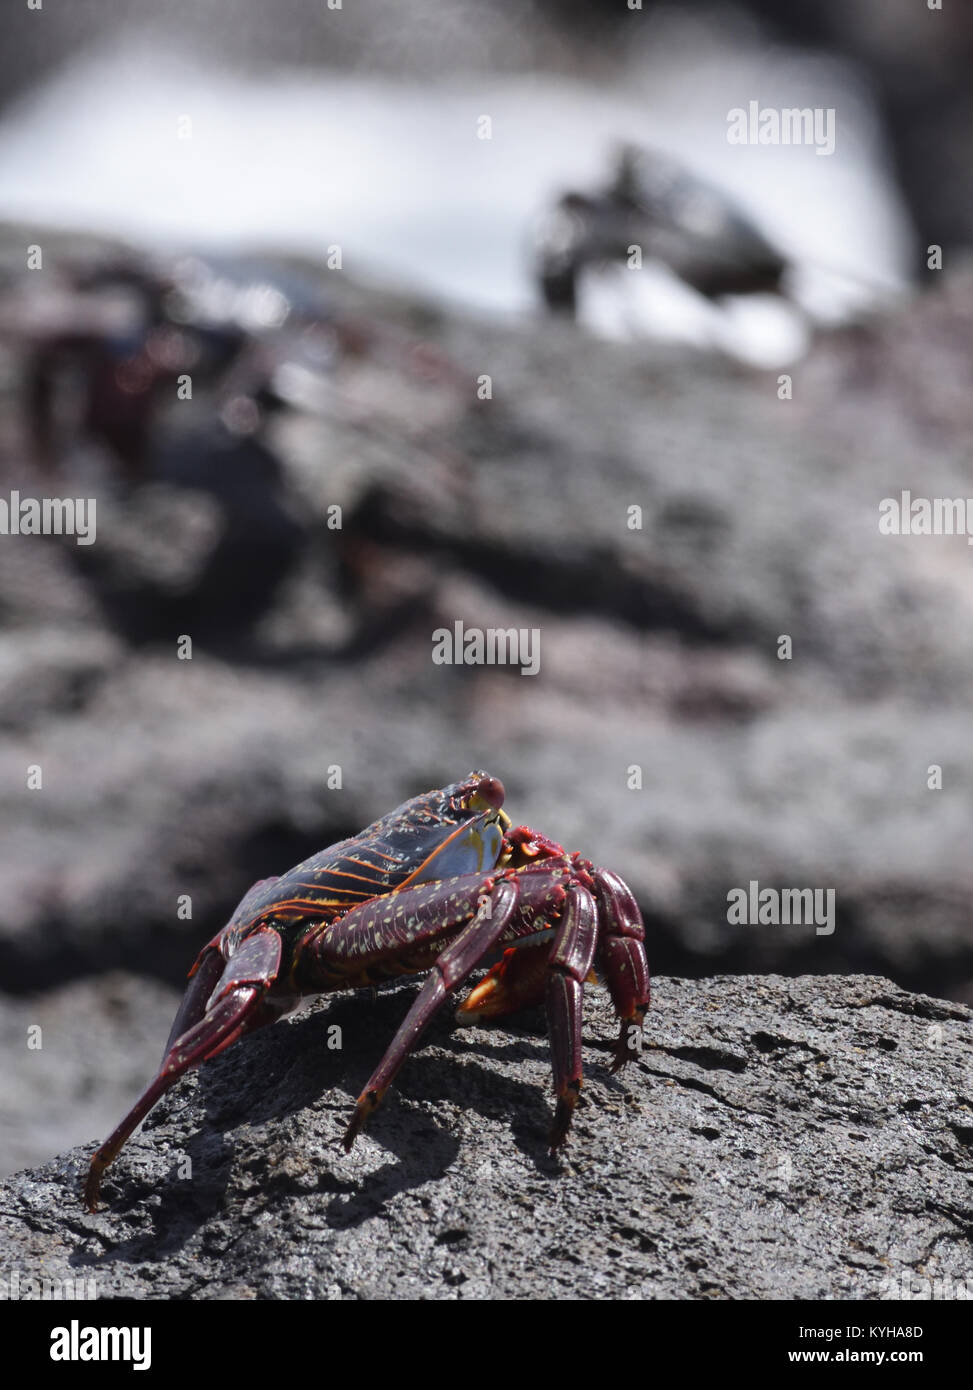 A blue coloured immature Sally Lightfoot Crab (Grapsus grapsus) is camouflaged against black rocks, in contrast - Stock Image